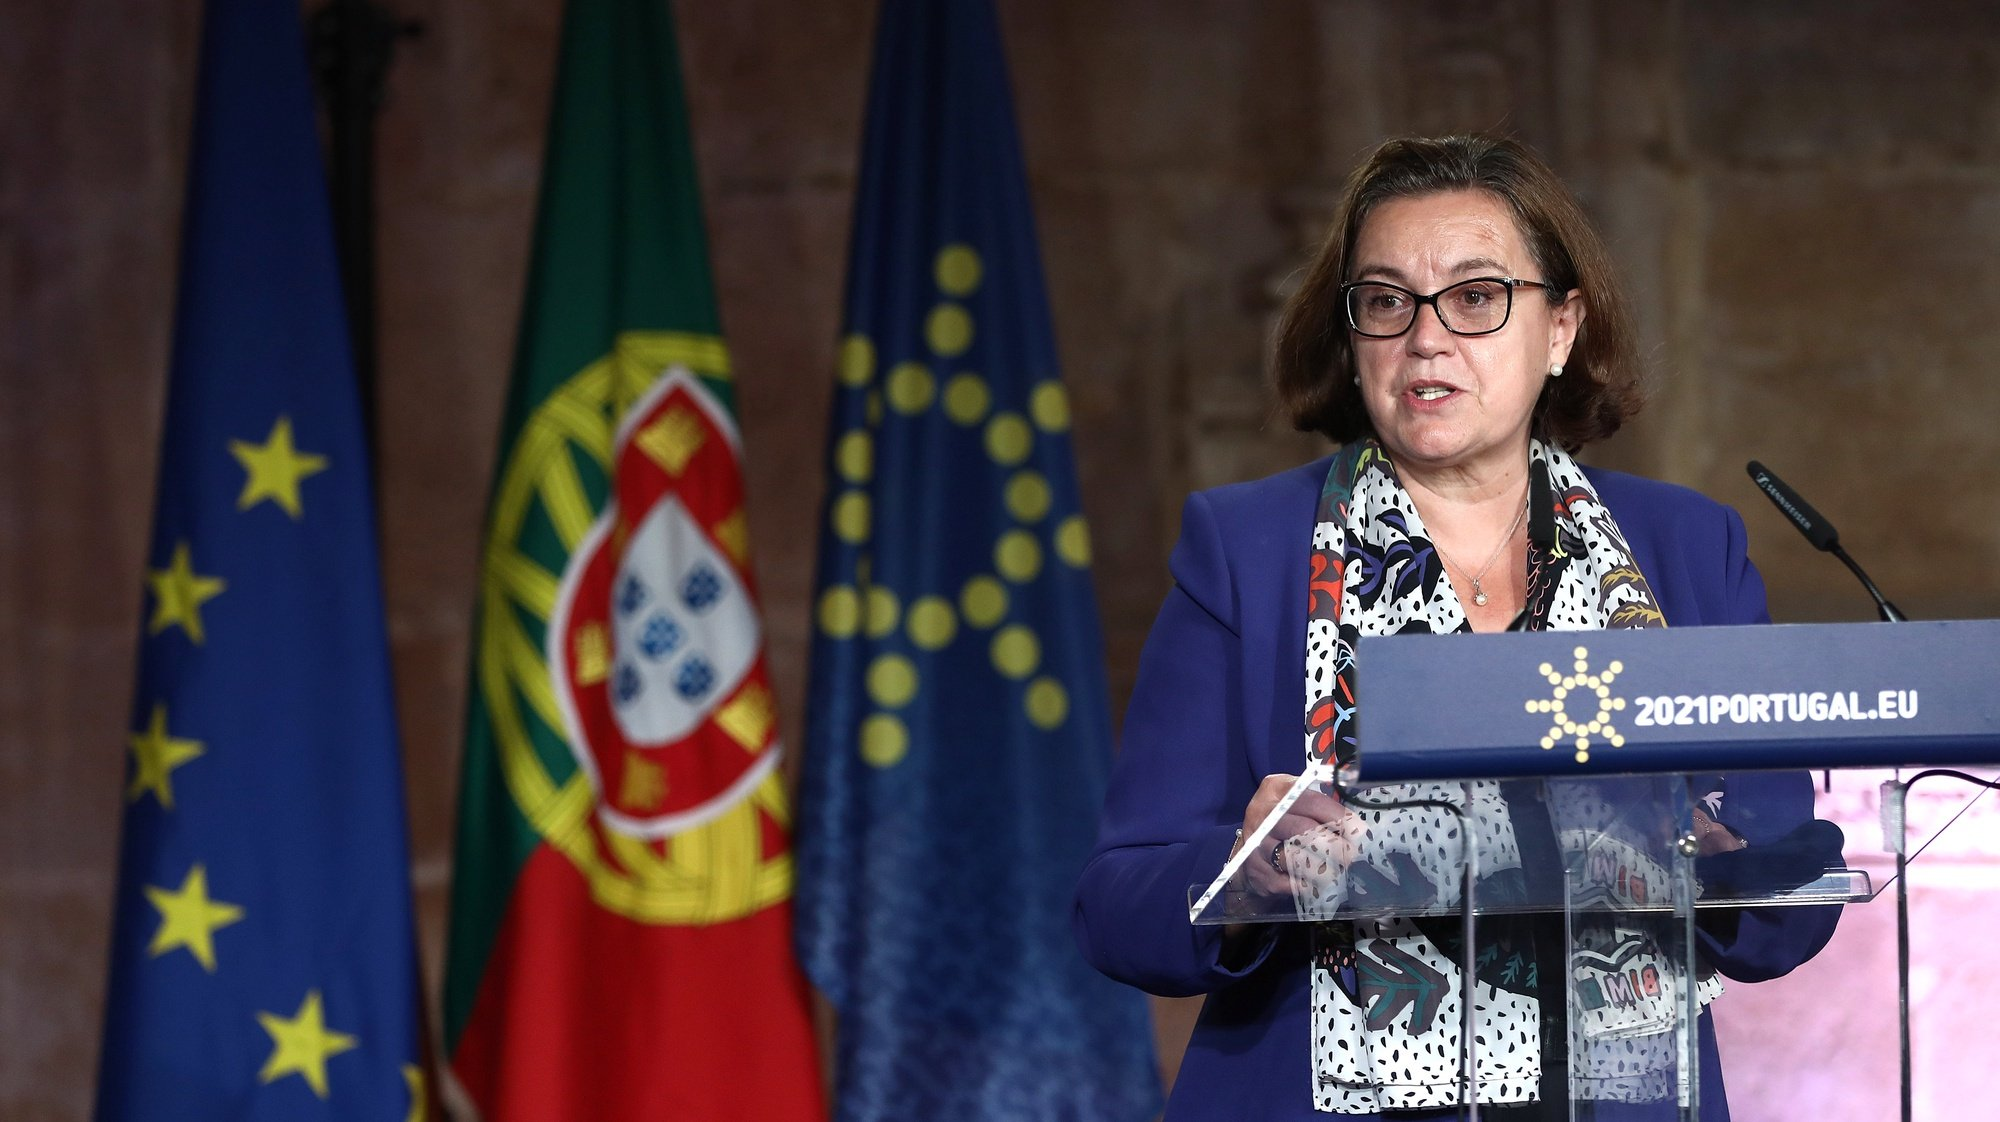 epa09278988 Portuguese Secretary of State for European Affairs Ana Paula Zacarias attends a Conference on the Launch of Creative Europe under the Portuguese Presidency of the Council of the European Union in Lisbon, Portugal, 17 June 2021. The high-level conference will feature speakers from all over Europe – cultural agents, thinkers, politicians, and governmental decision-makers – with the aim of getting Europe behind the new Creative Europe Program.  EPA/ANTONIO PEDRO SANTOS